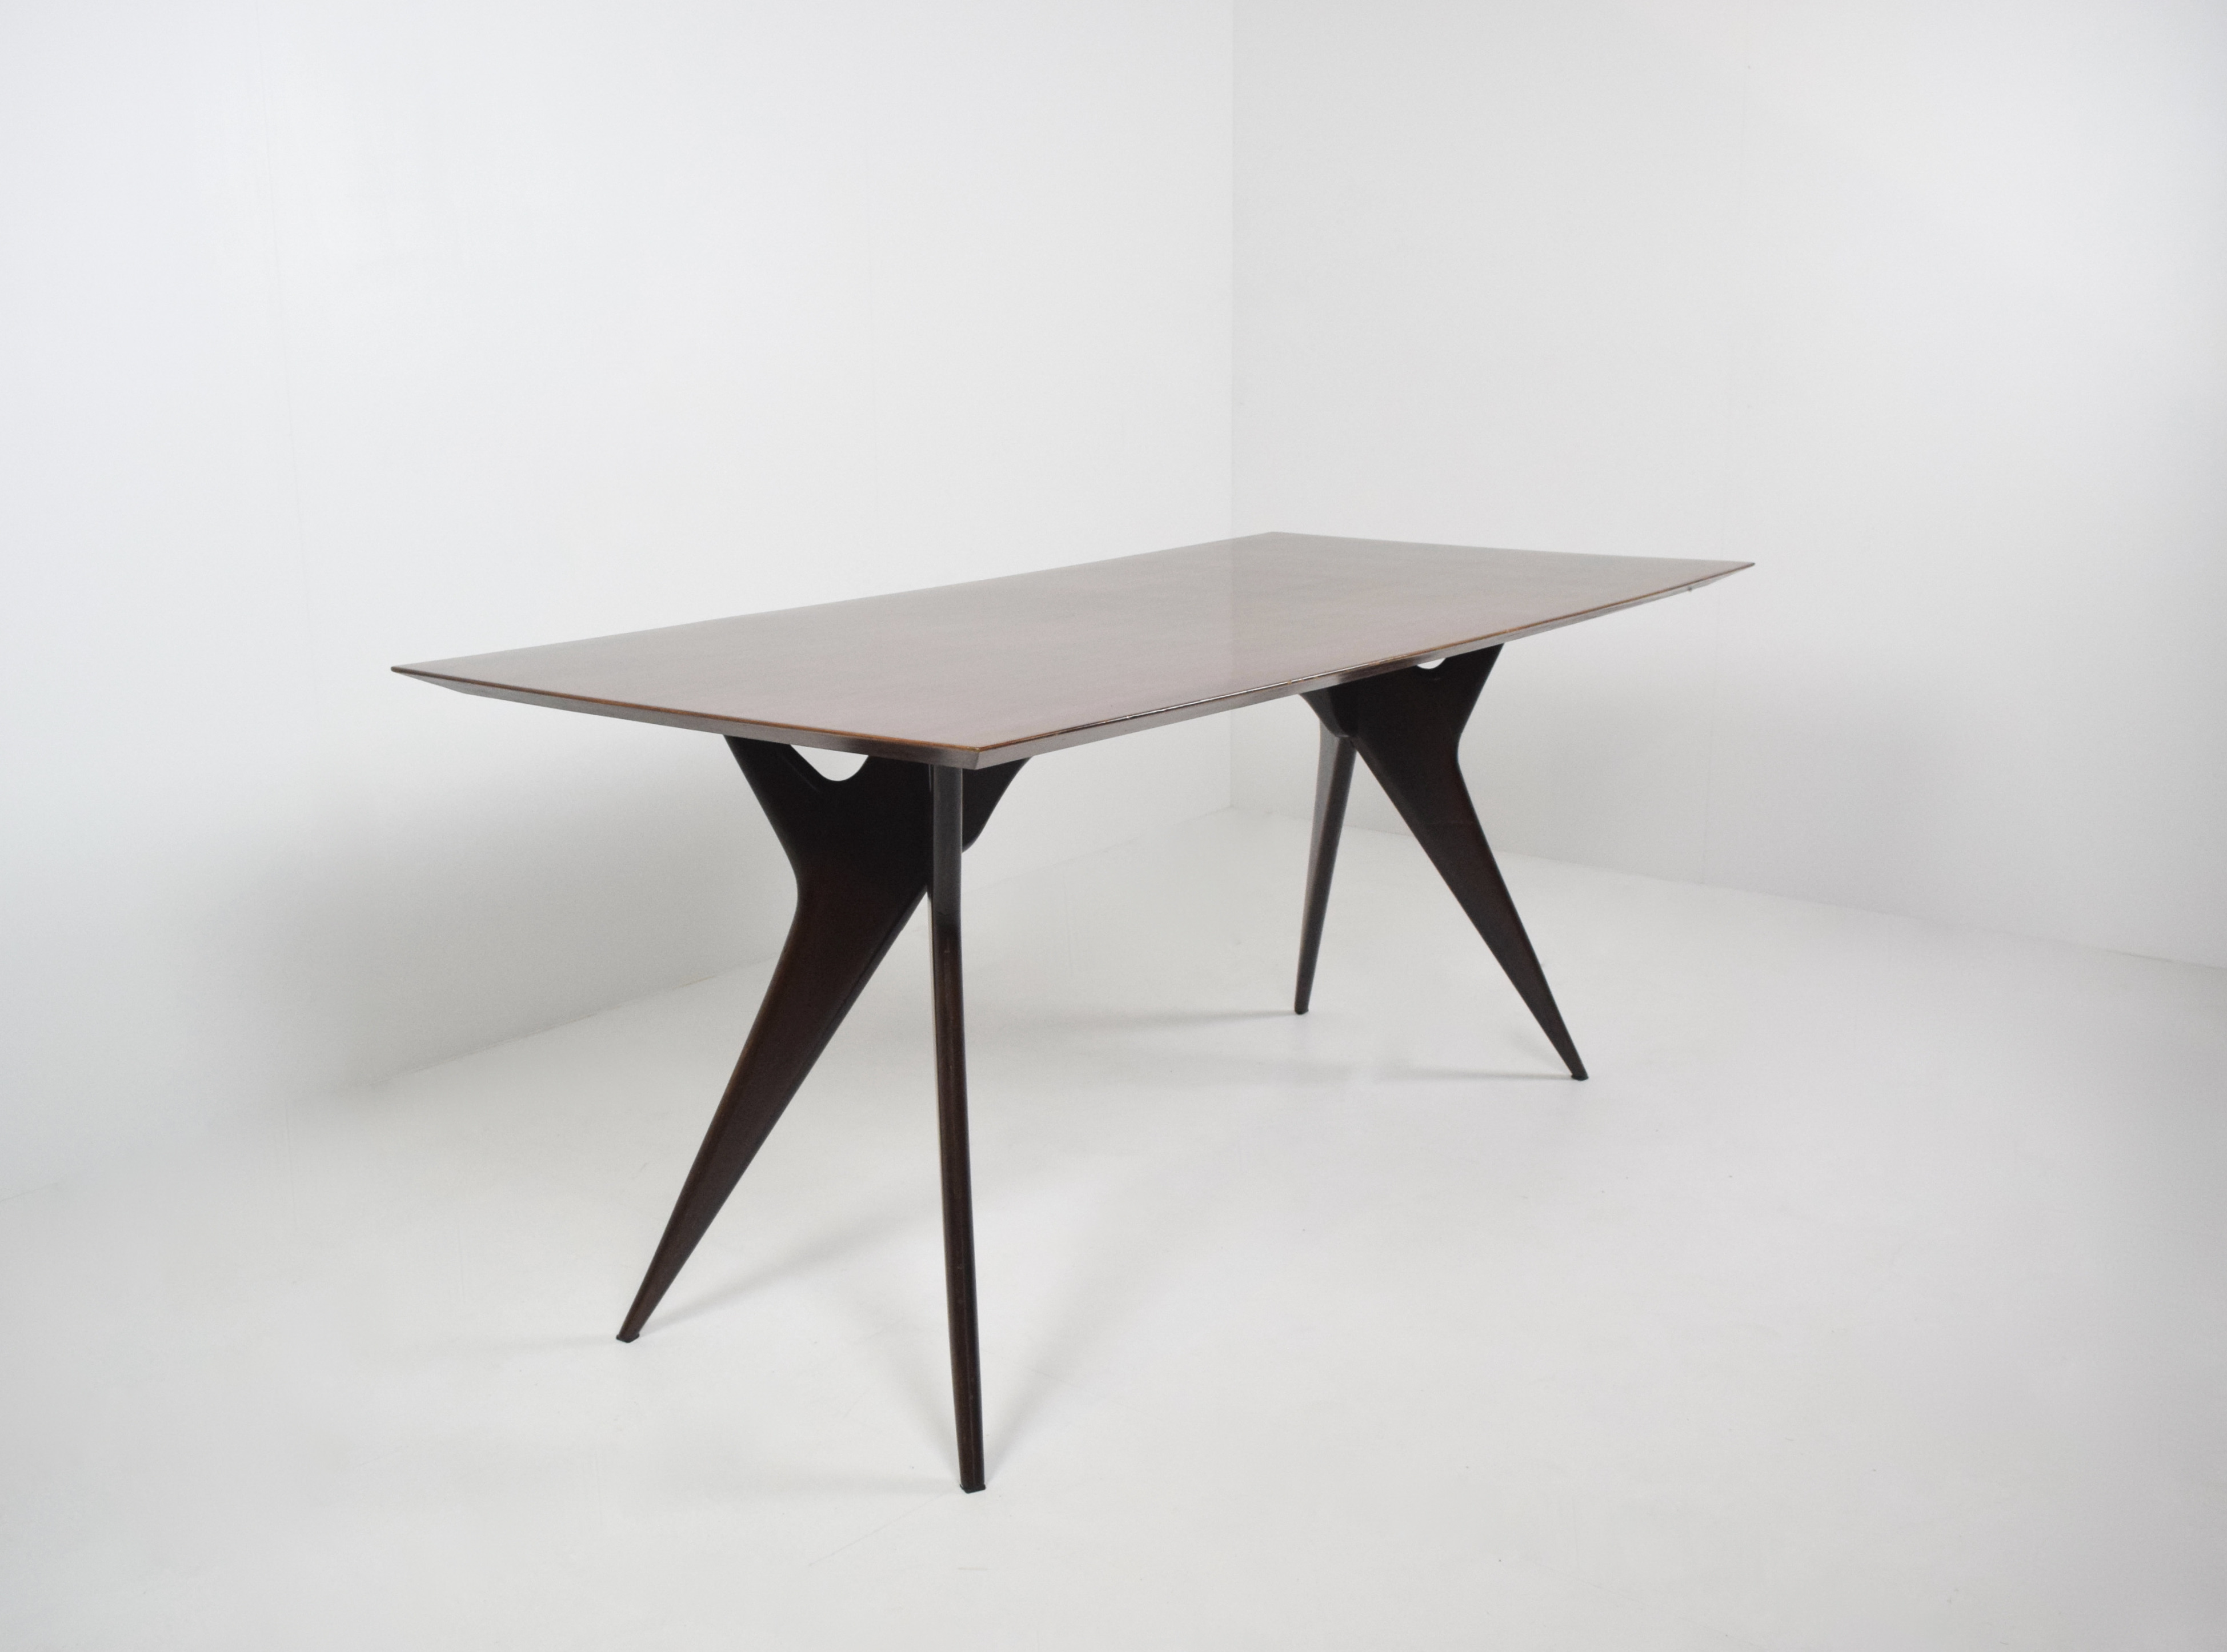 Ico Parisi Table in Rosewood for MIM Roma, Italy 1950's